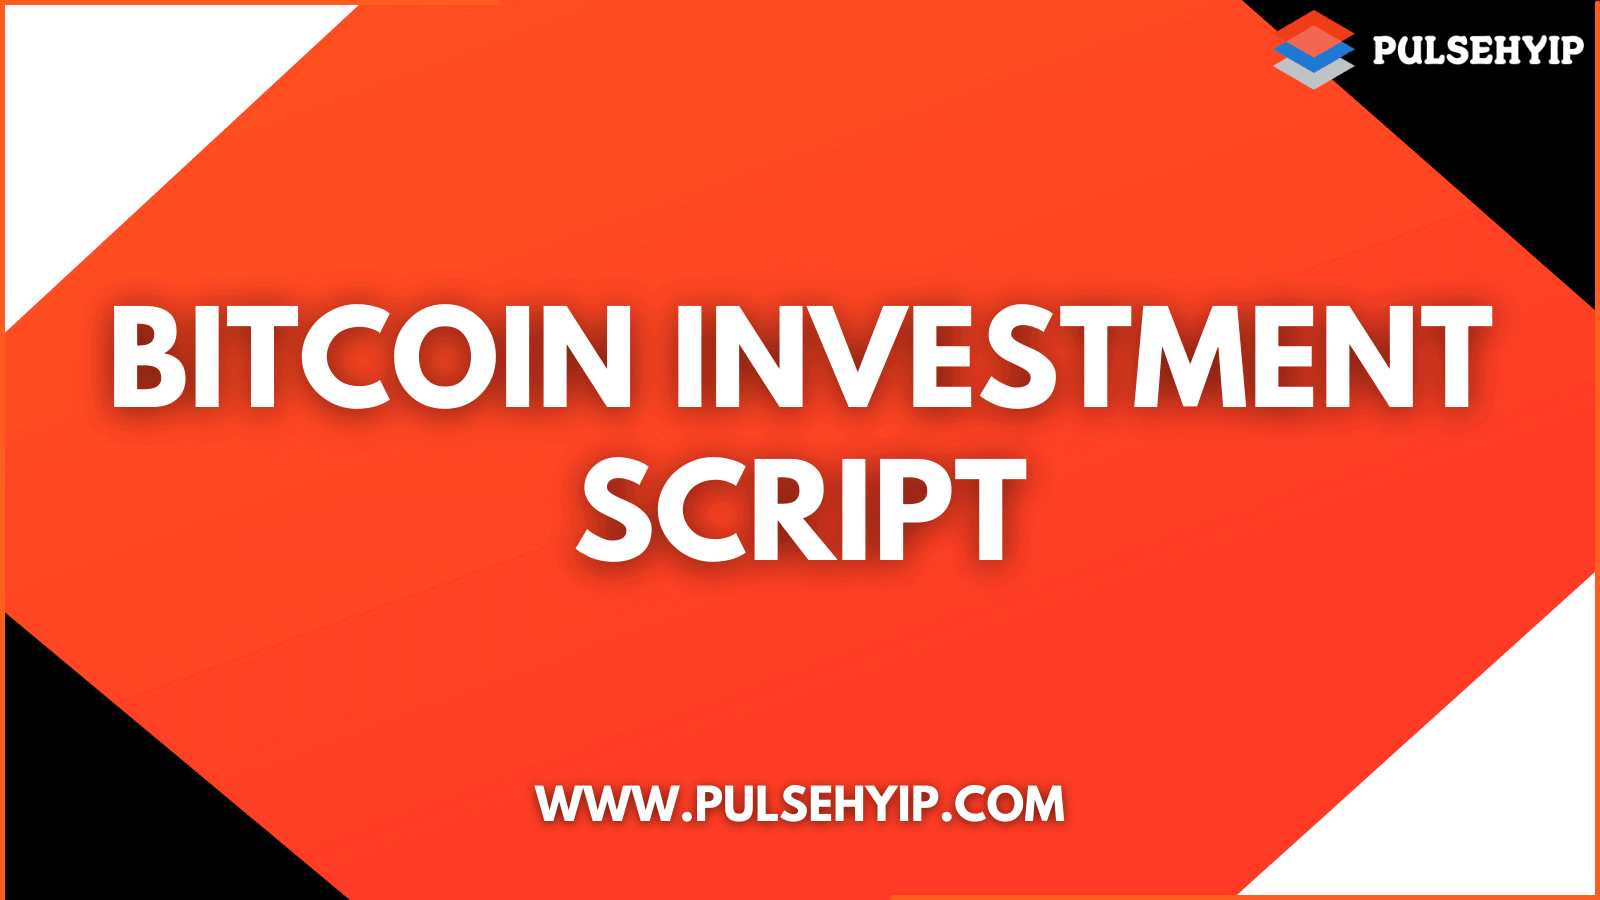 Bitcoin Investment Script to Facilitate Cryptocurrency Investment Platform Development